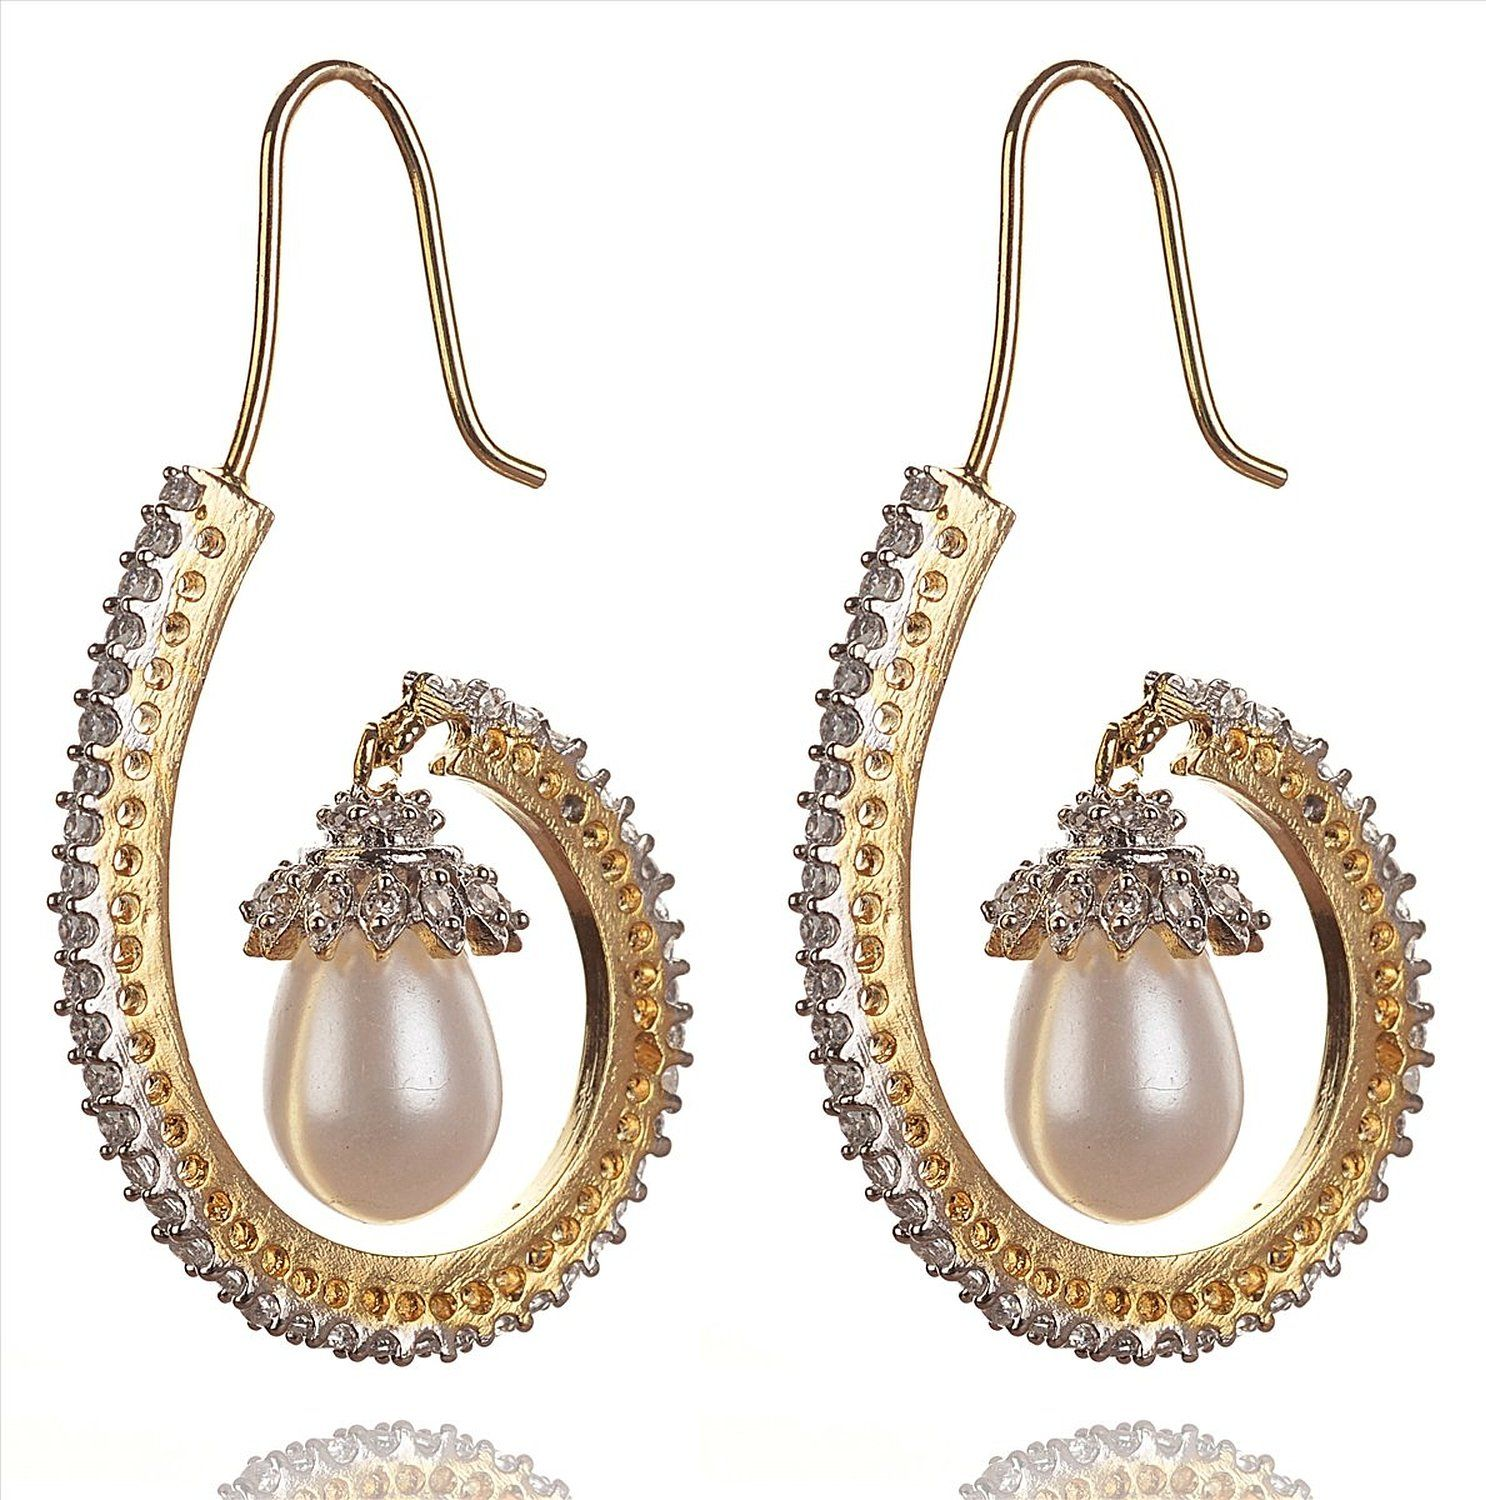 screen mini long products at earrings pm online collections shot store joker jewelry shell jewellery